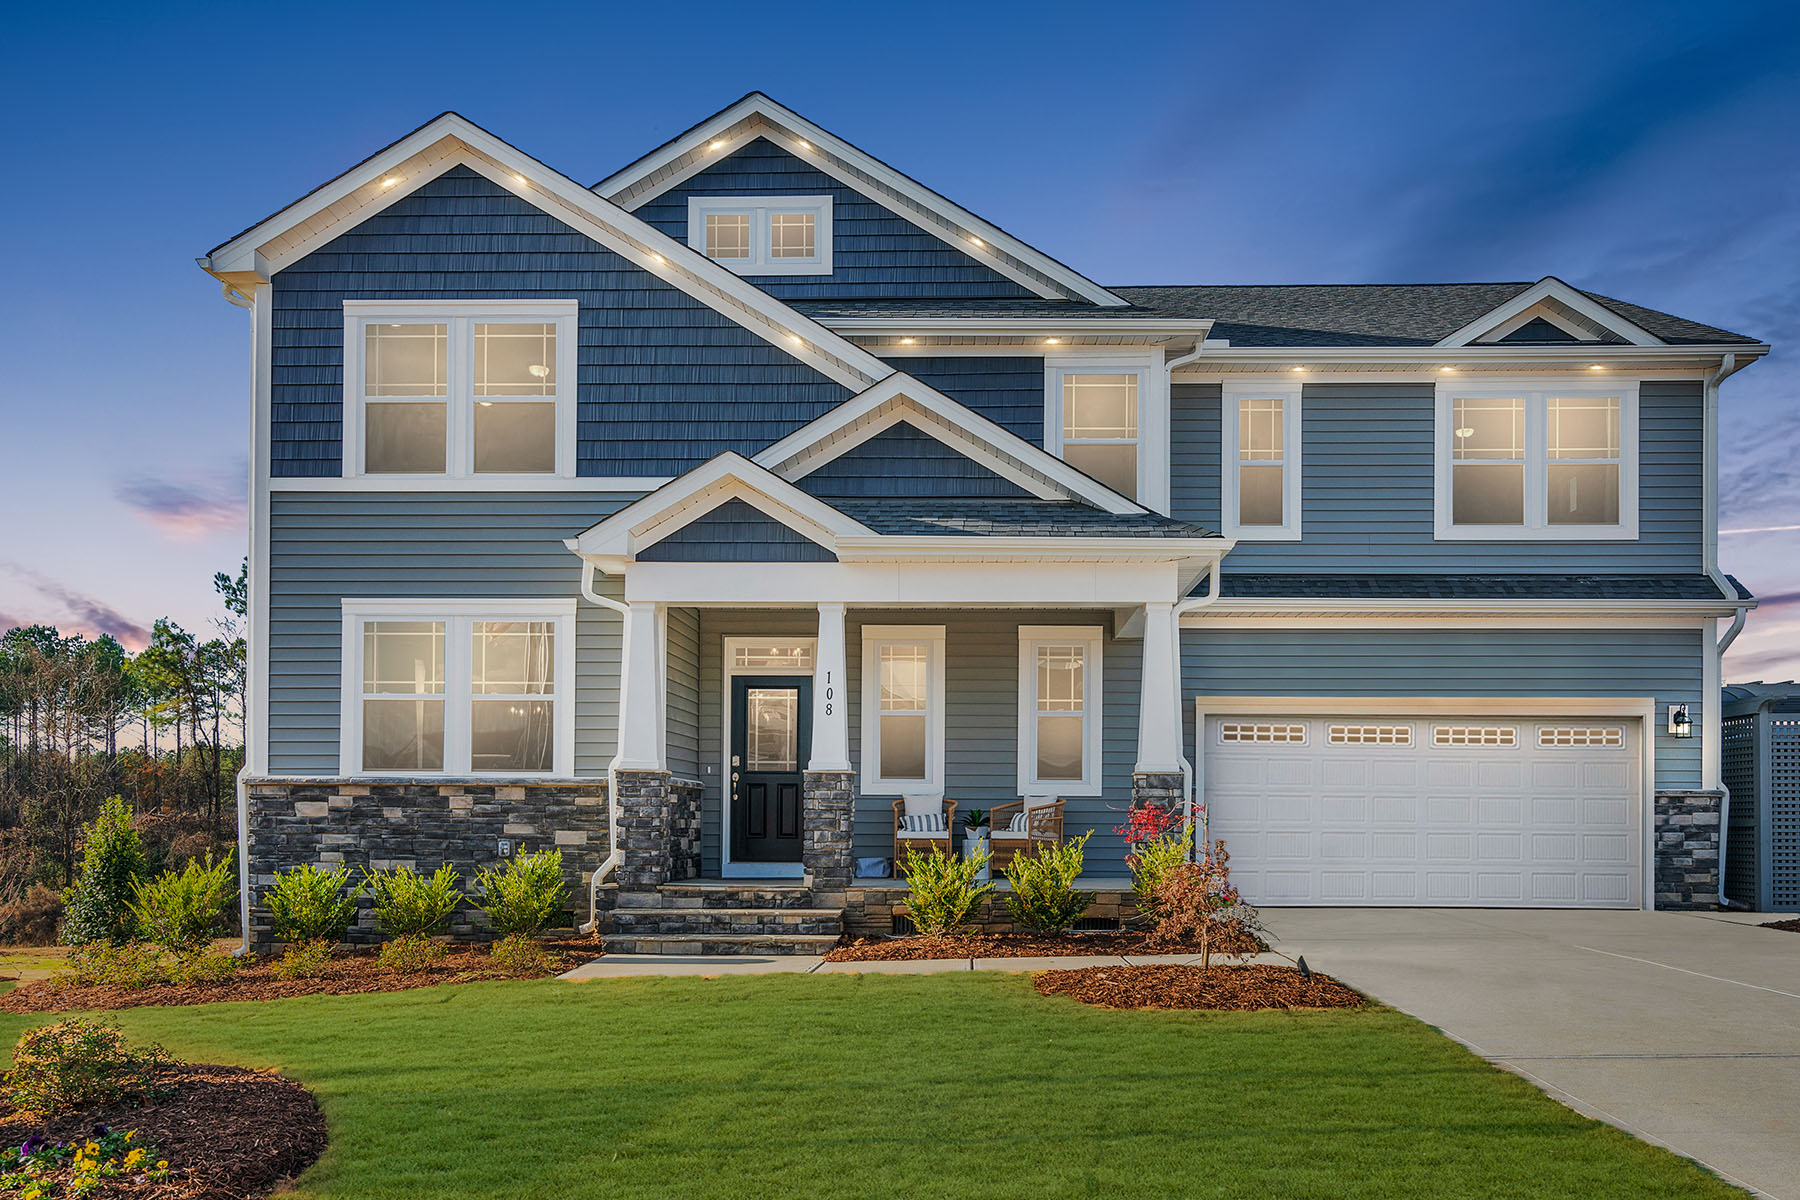 Oak Park Elevation Front in Garner North Carolina by Mattamy Homes